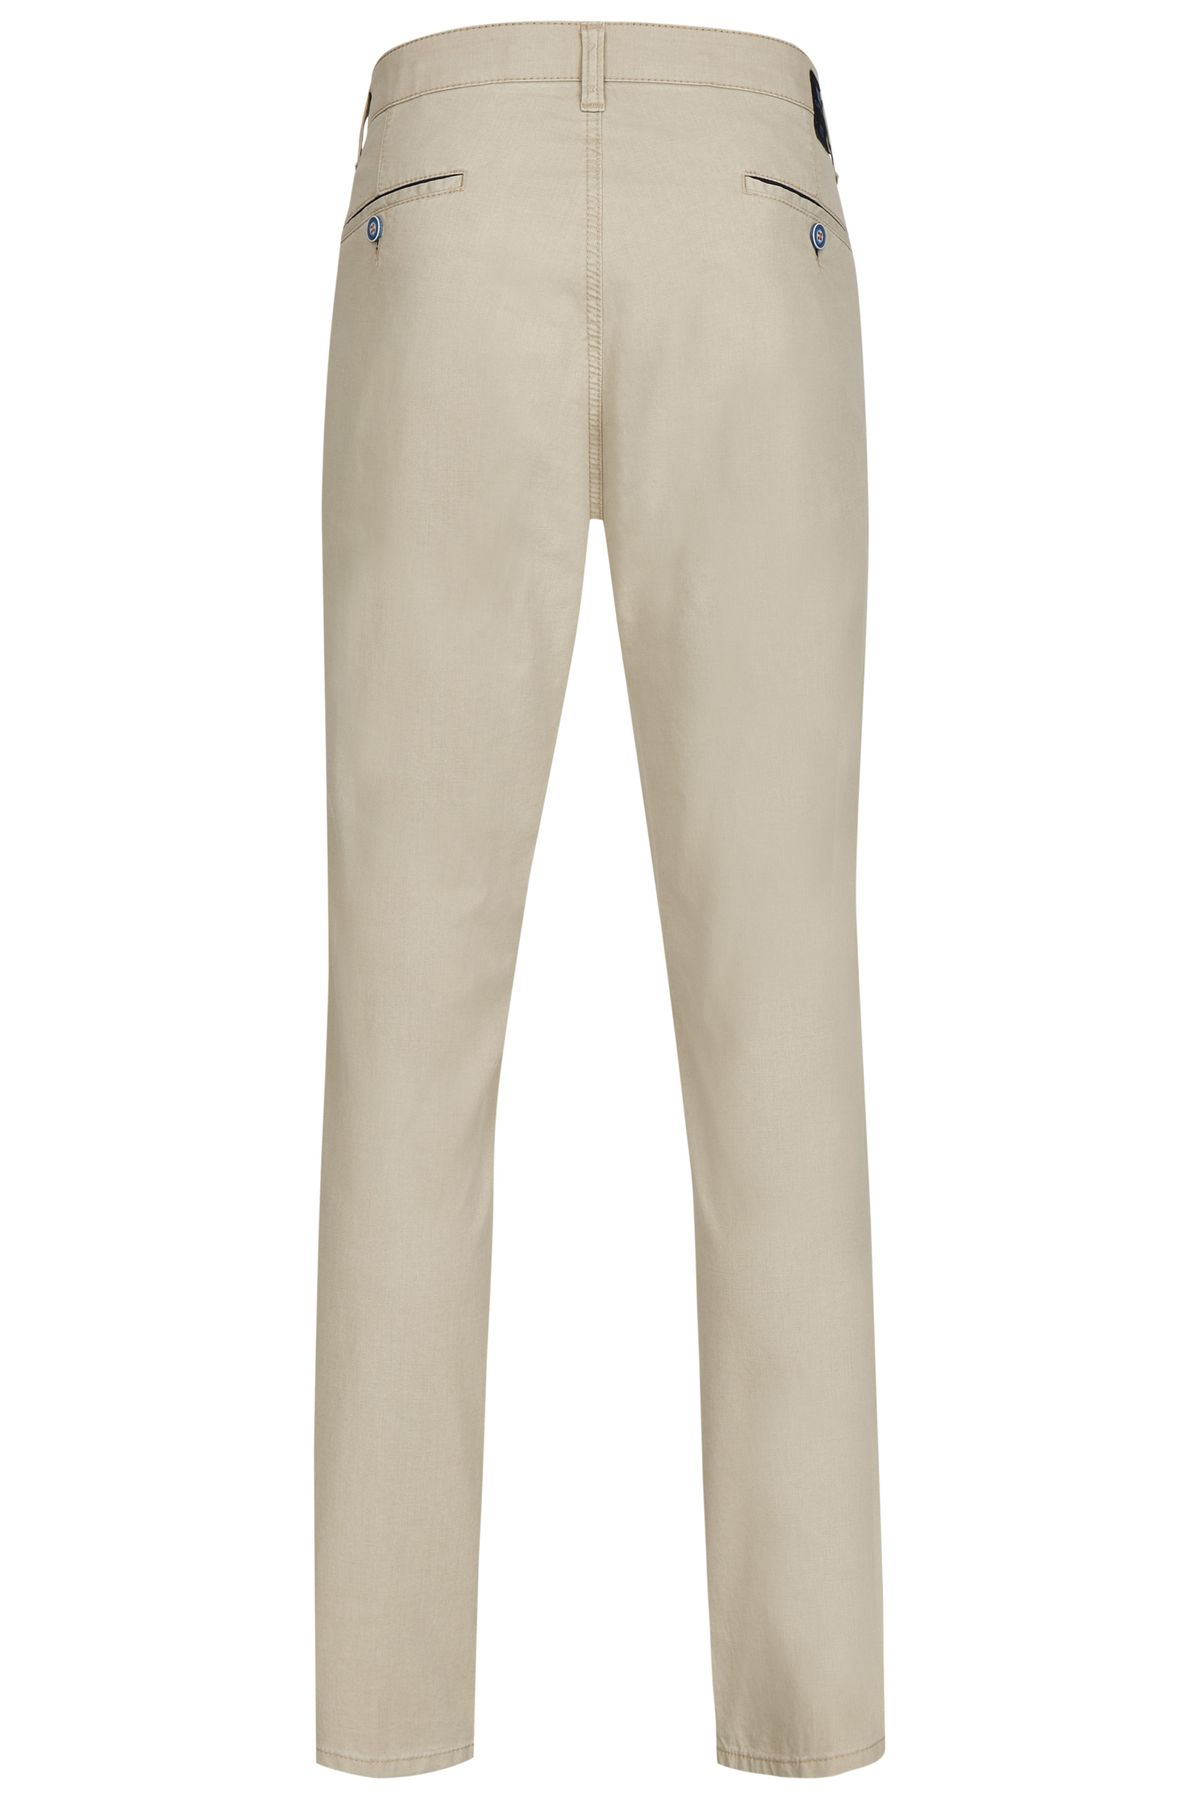 Club of Comfort - Herren Chino Hose, Marvin (6901) – Bild 5